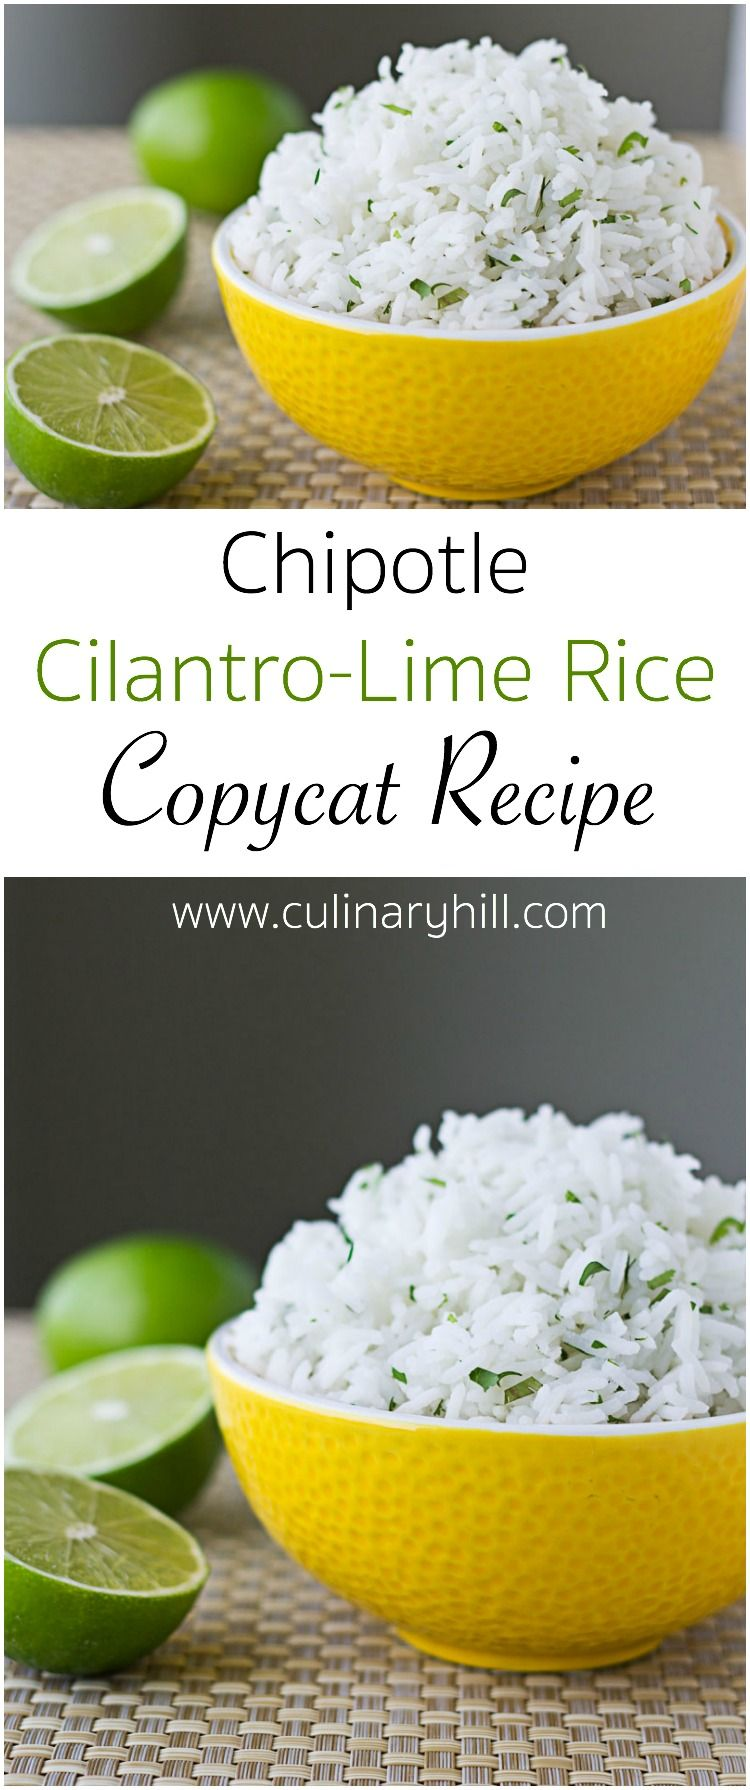 Learn the secrets to making Chipotle Cilantro-Lime Rice at home. It all starts with the right type of rice cooked in an unusual way.